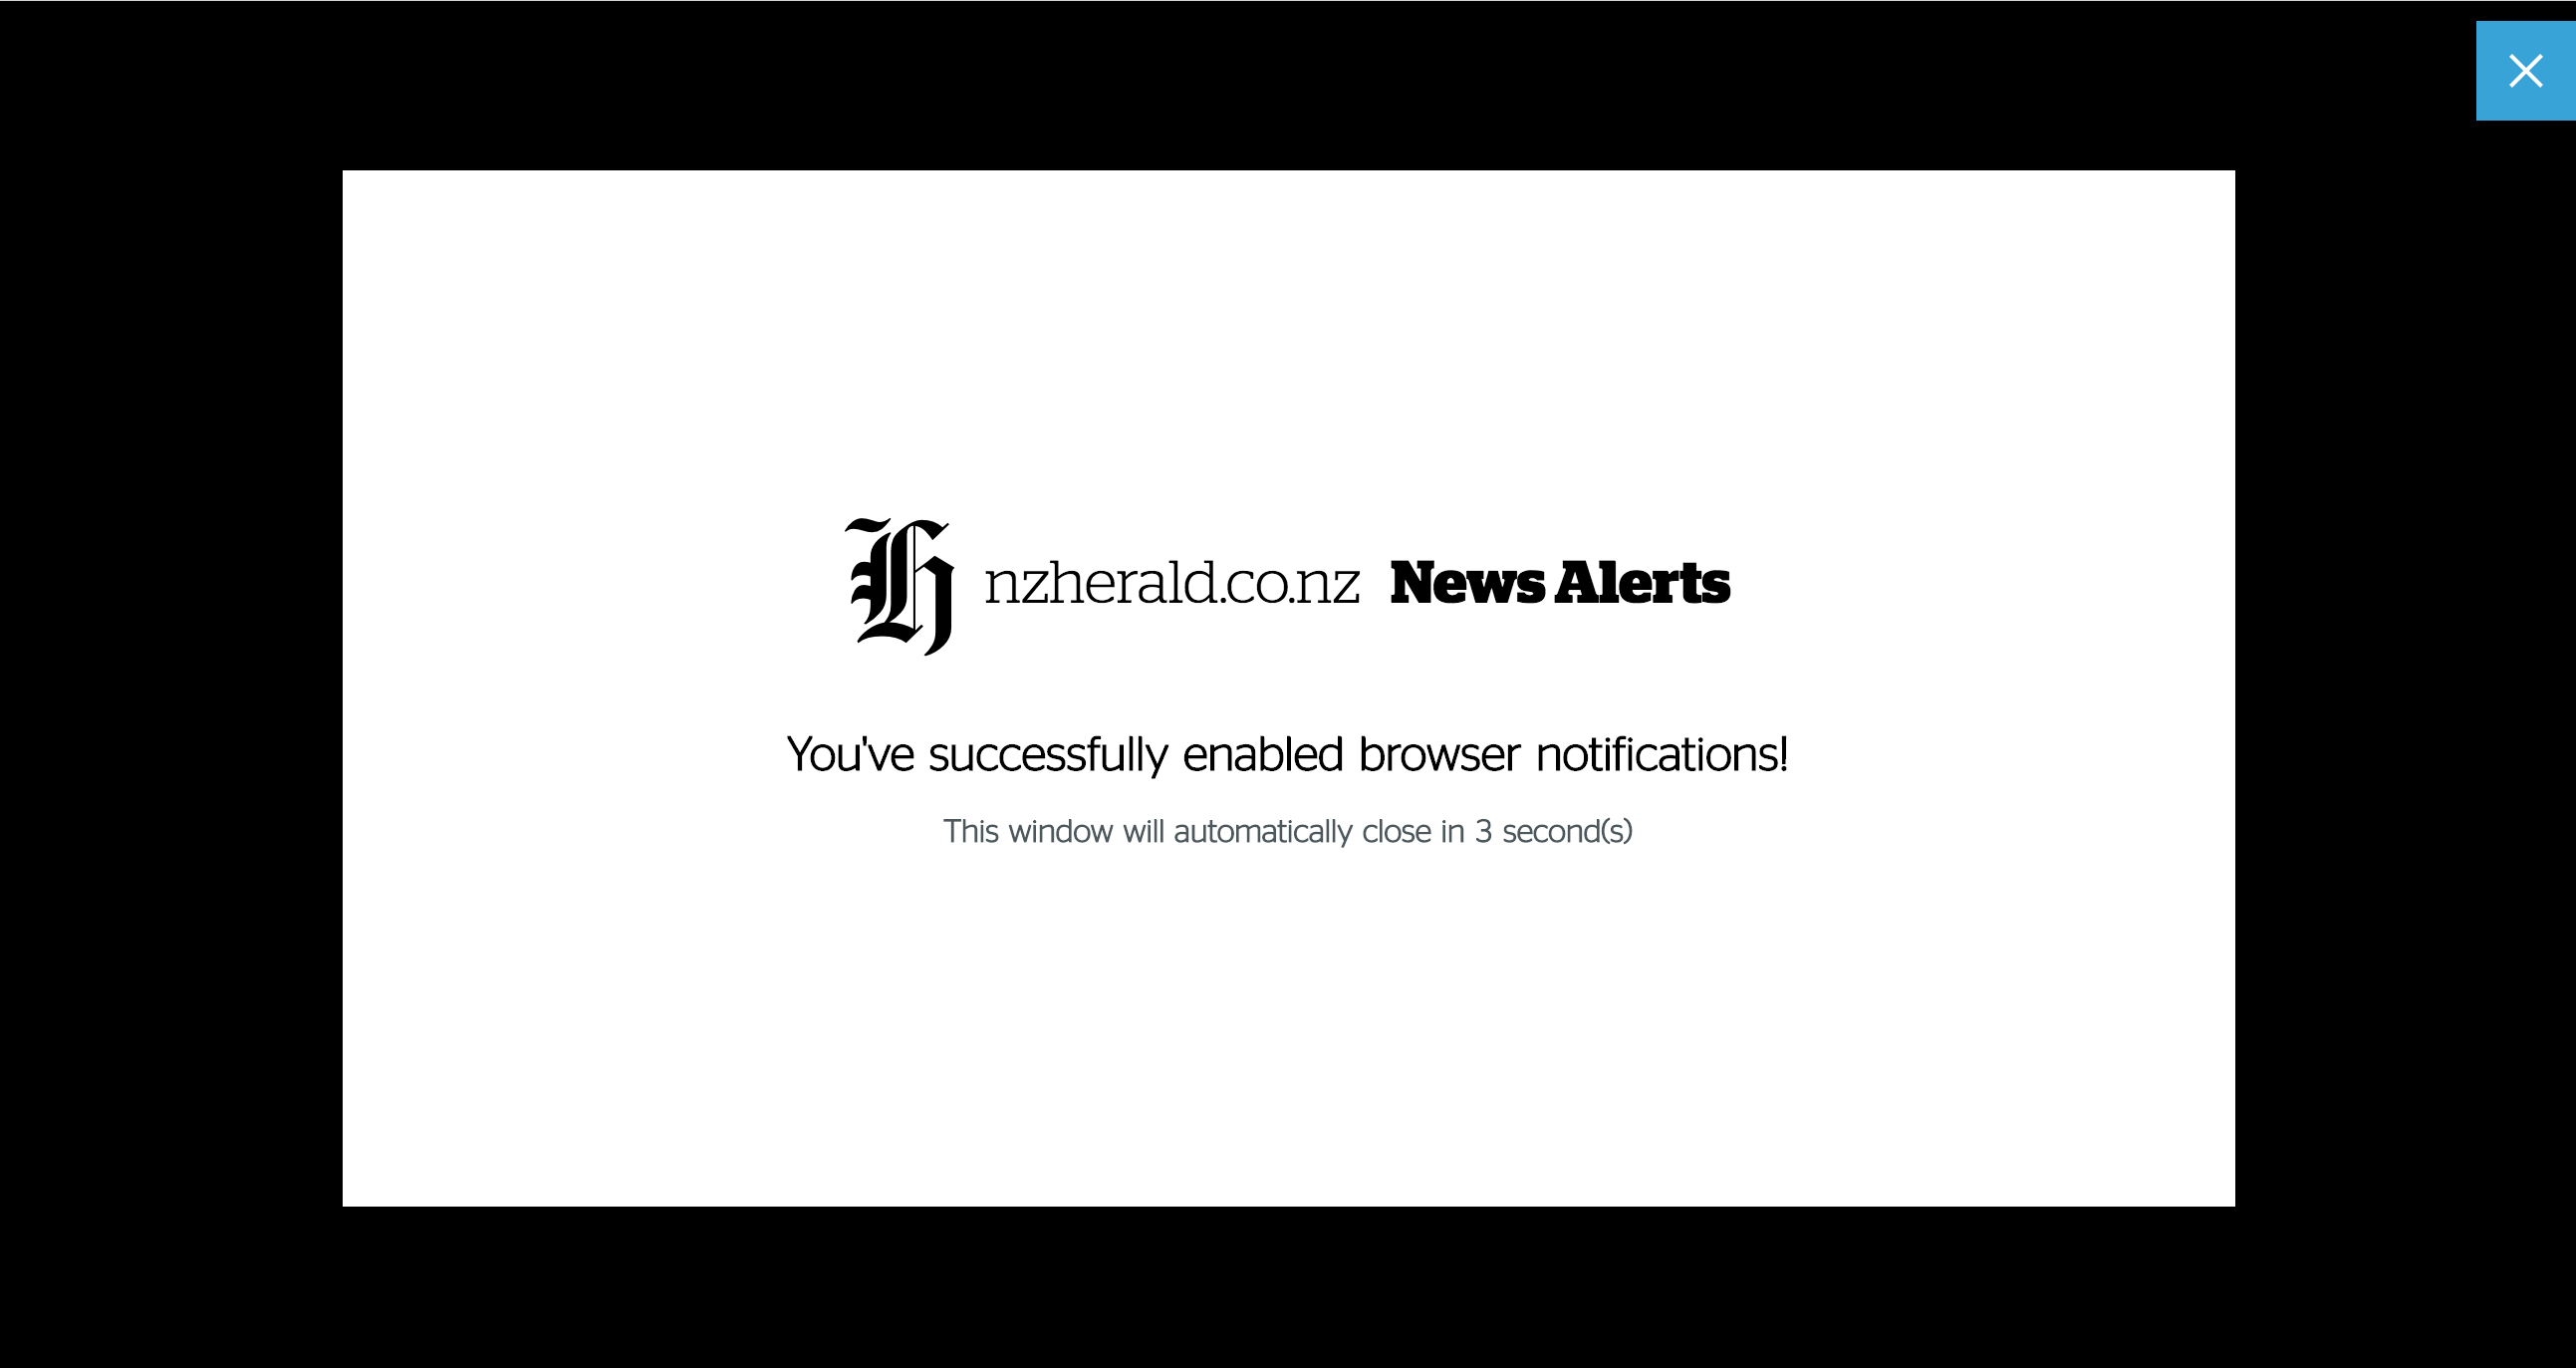 web-notification-opt-in-success-screen-new-zealand-herald